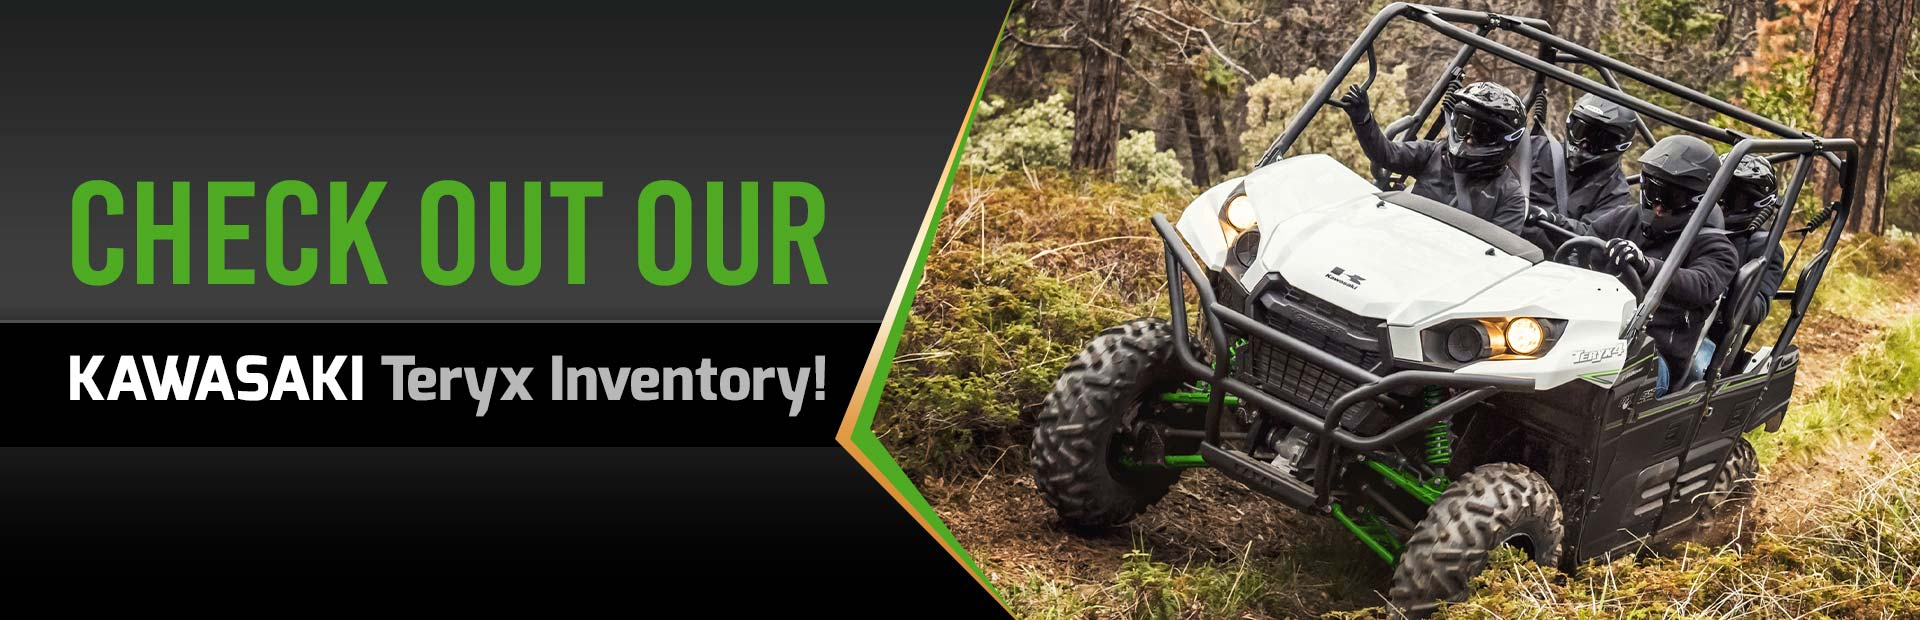 Check out our Kawasaki Teryx Inventory! Click here to see our models!